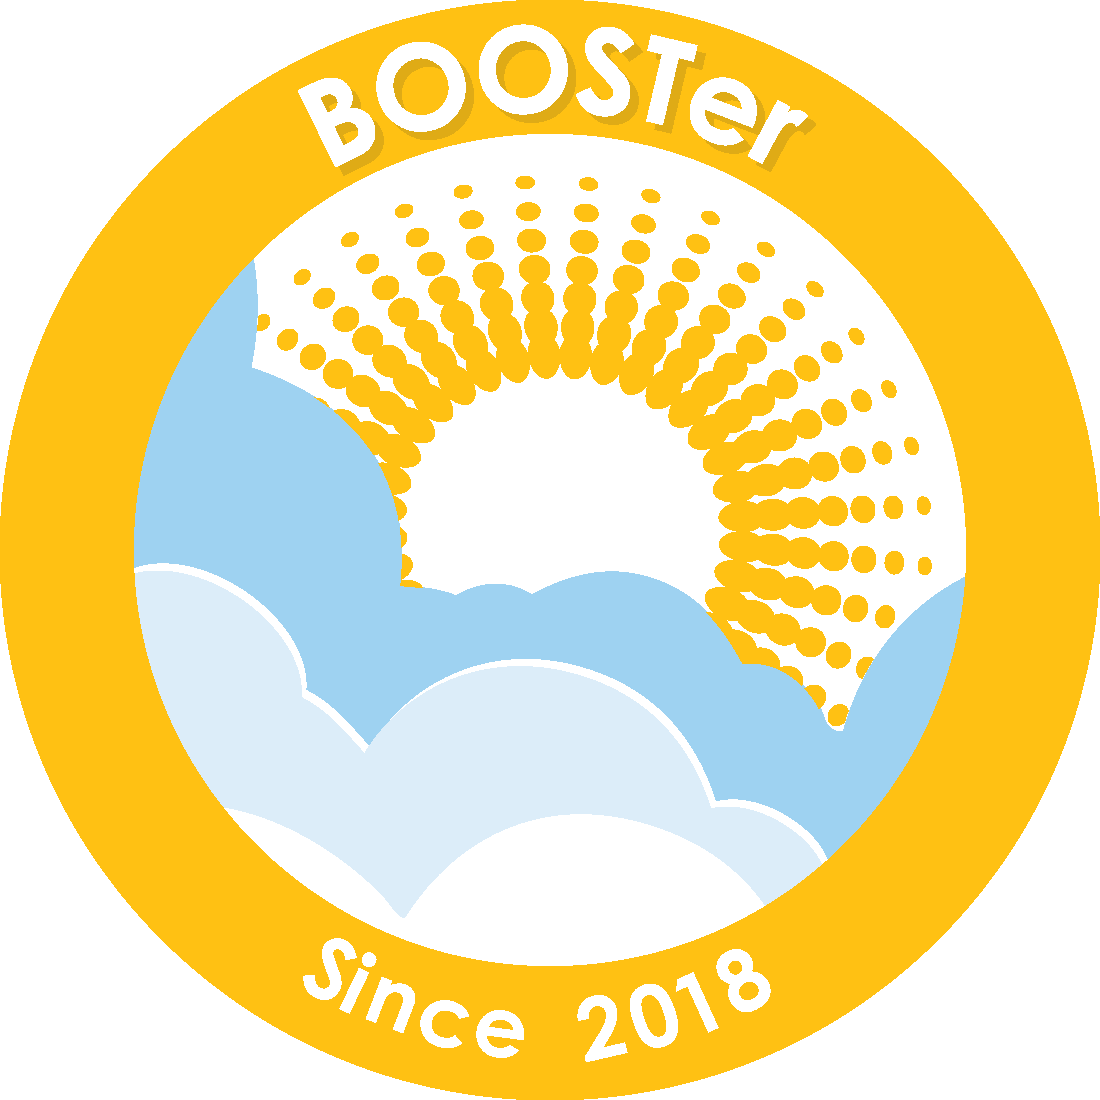 2018 BOOSTer Since badge